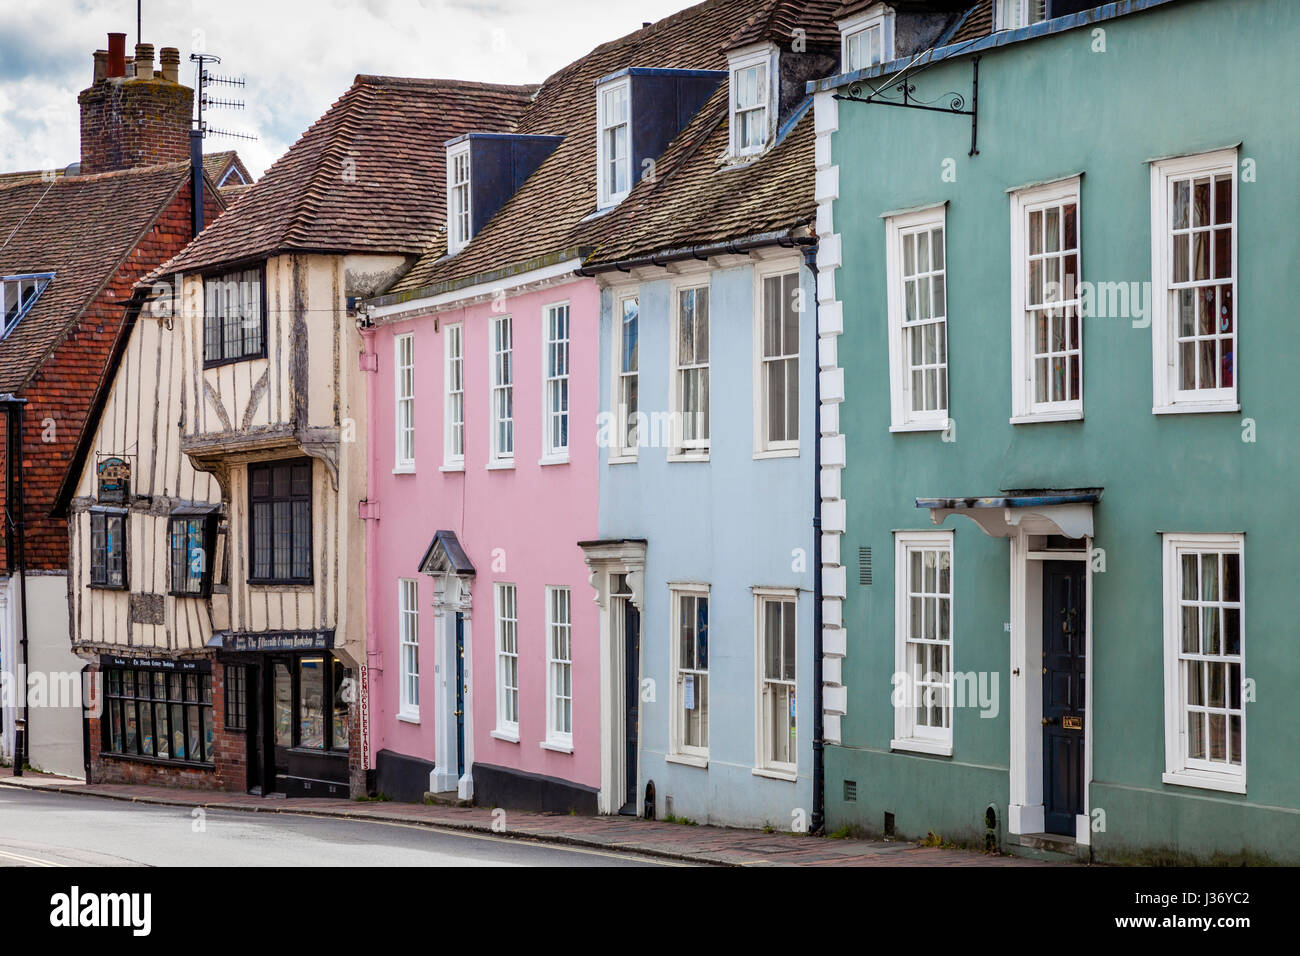 Colourful Houses and The Fifteenth Century Bookshop, High Street, Lewes, Sussex, UK - Stock Image